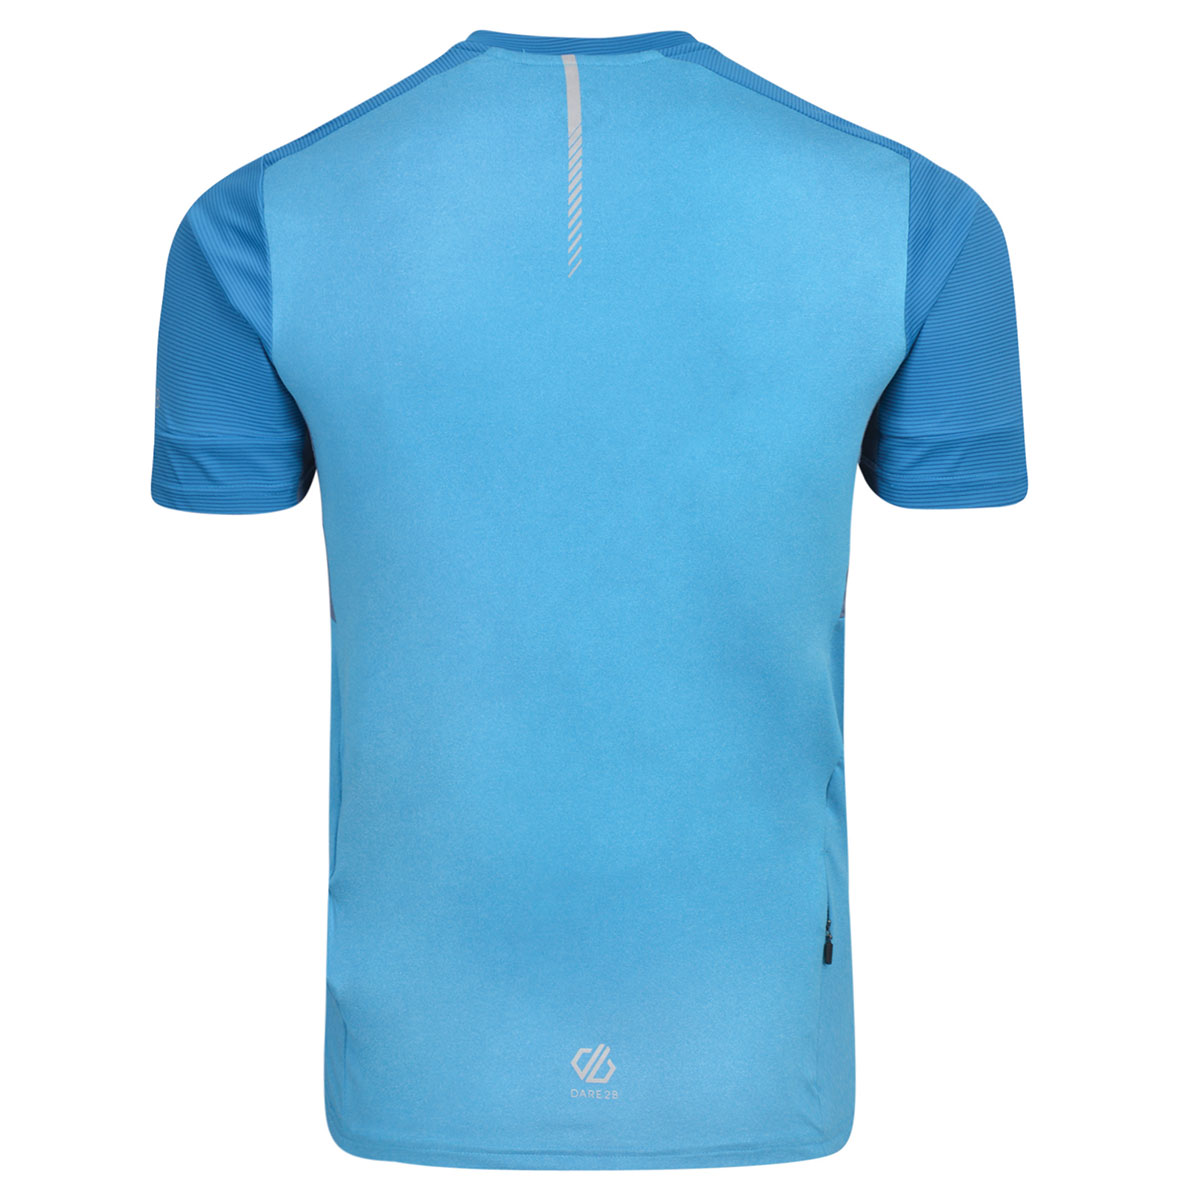 Dare 2b Mens Equal Lightweight Quick Dry Wicking Cycling Jersey 49/% OFF RRP